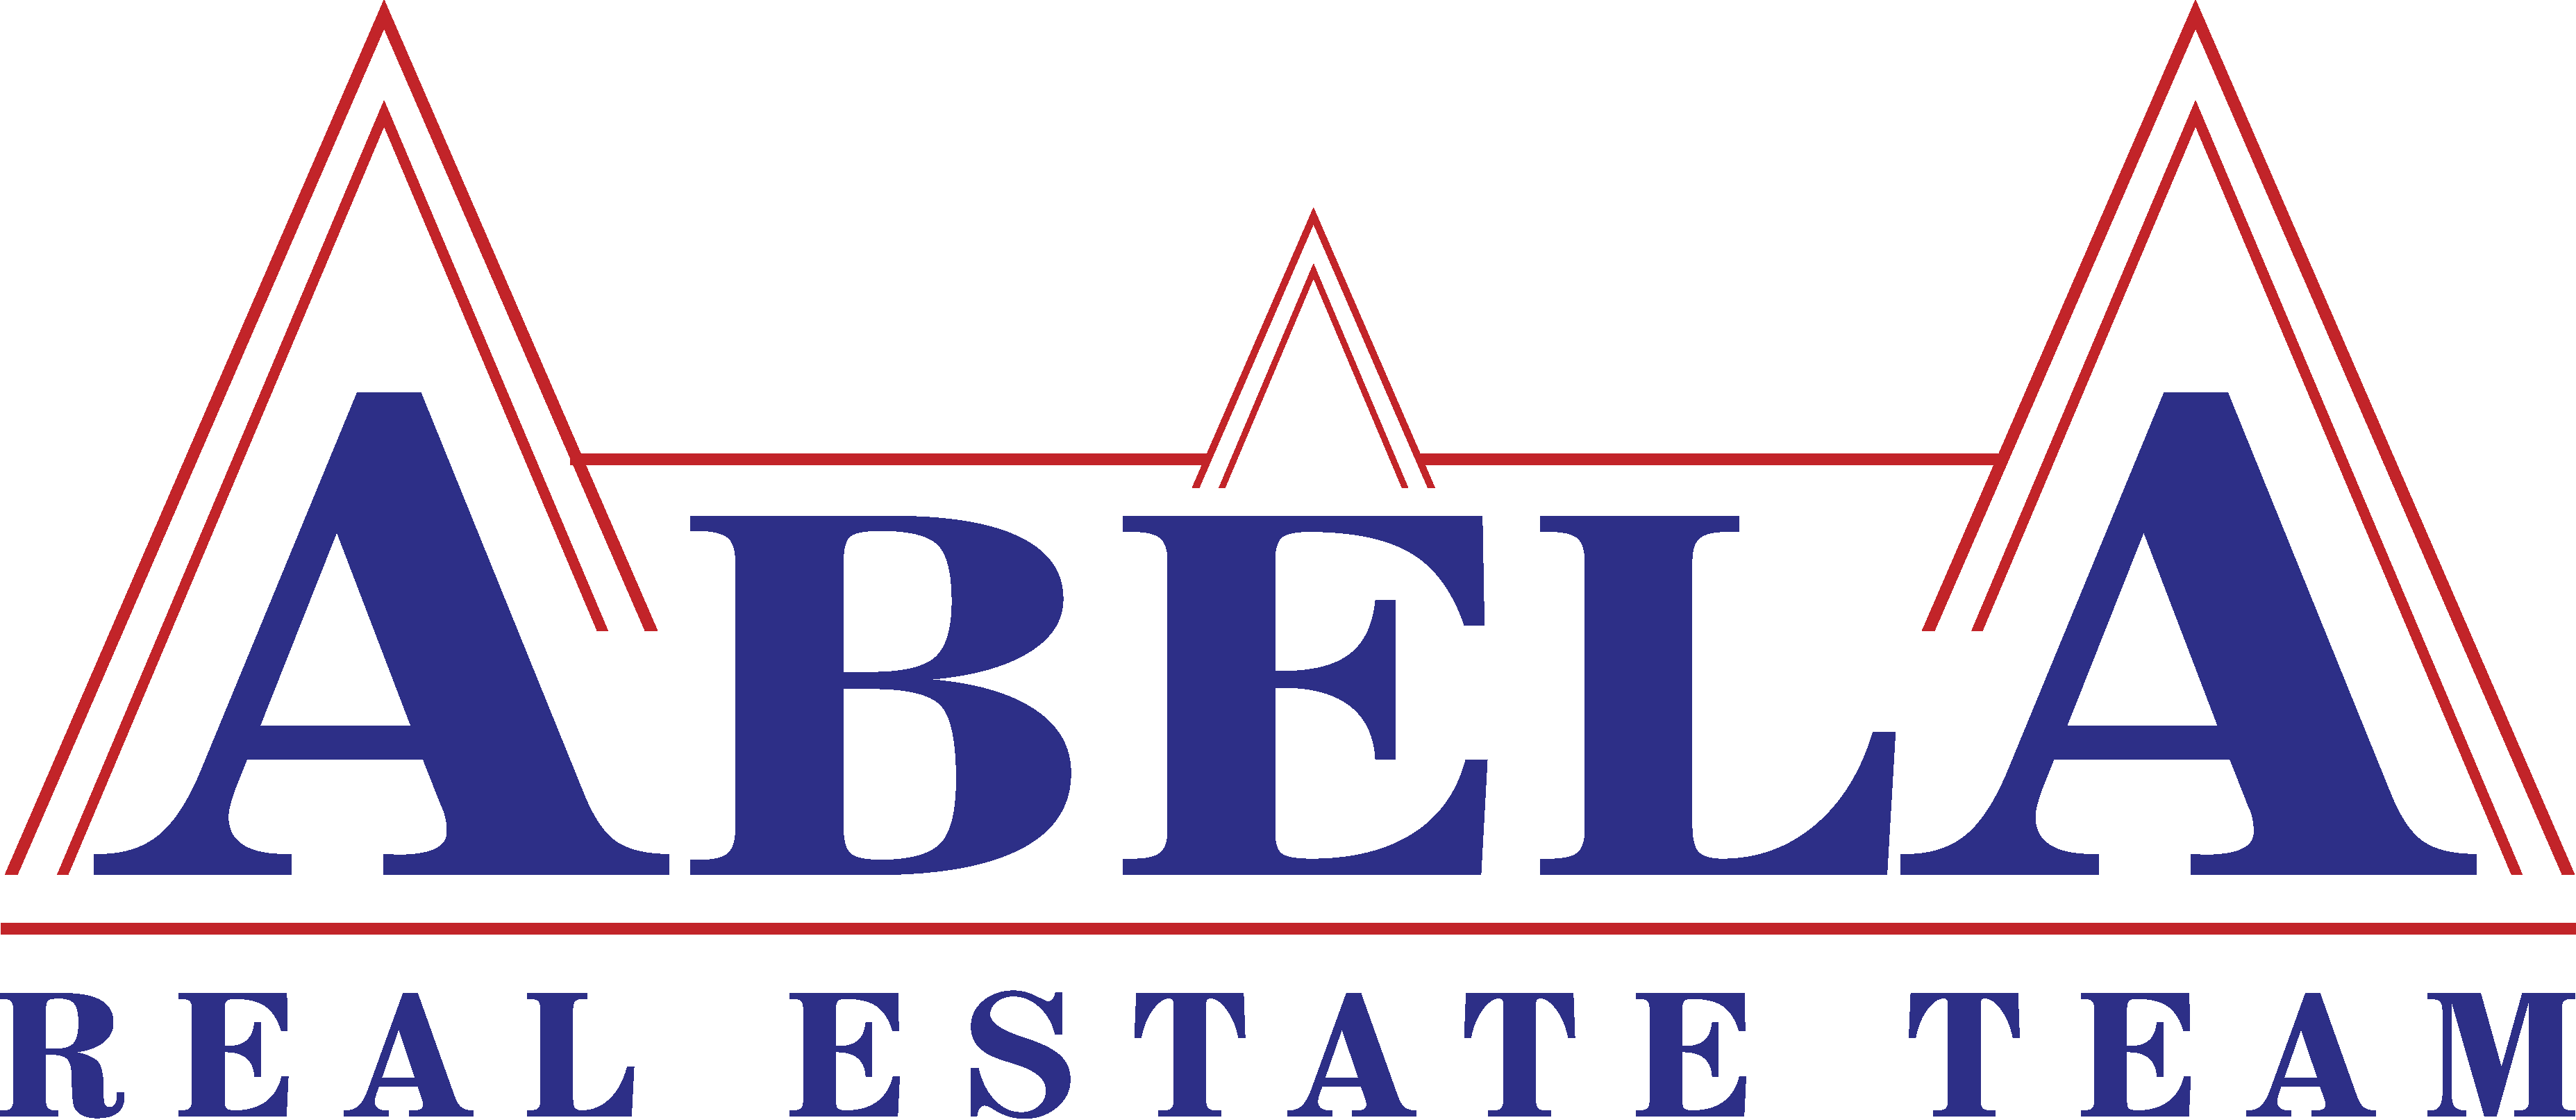 ABELA REAL ESTATE | RE/MAX PREMIER INC.